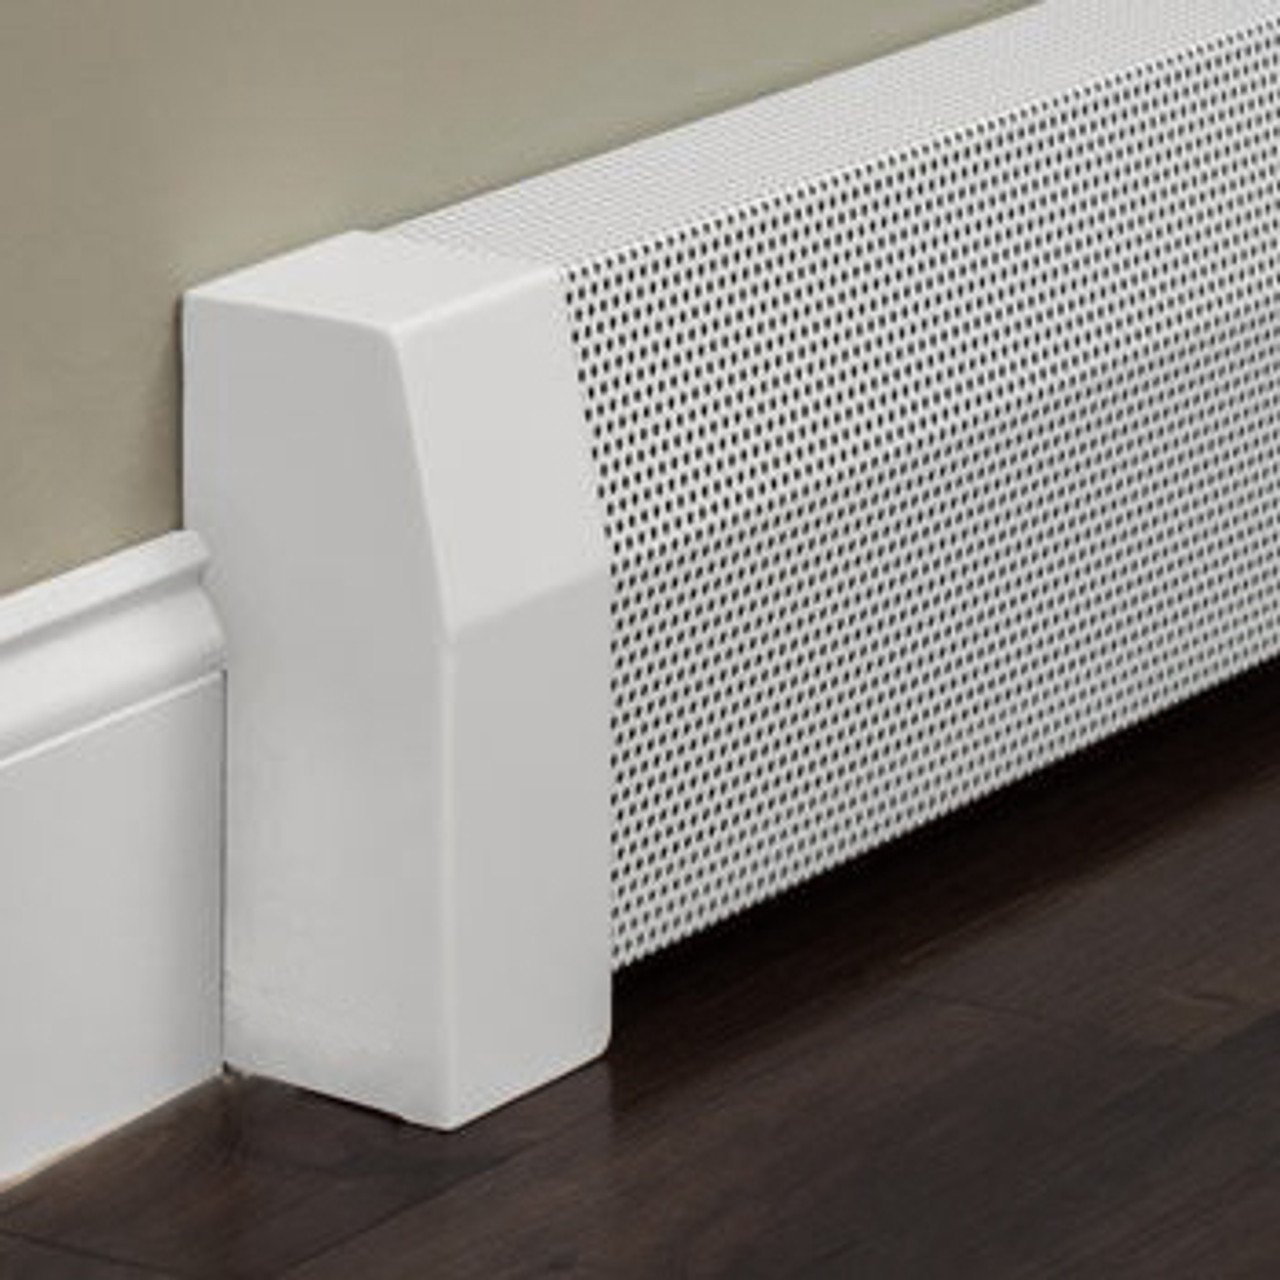 Premium Baseboard Cover 6 Ft Length Vent And Cover